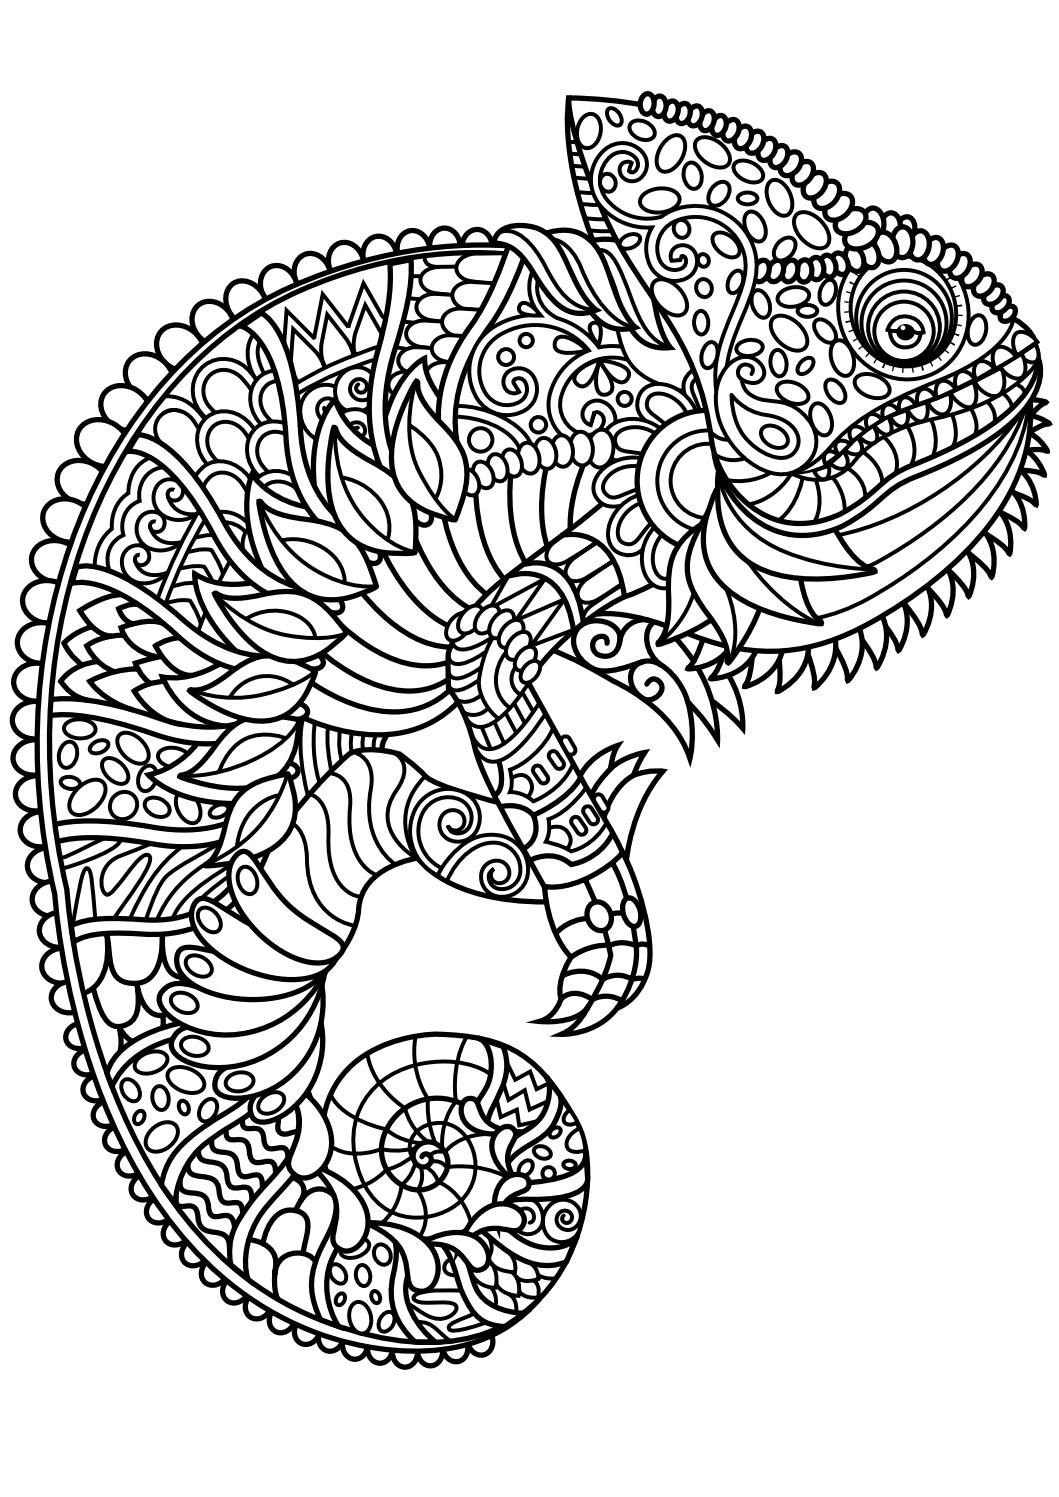 Day Of The Dead Coloring Pages Pdf At Getdrawings Com Free For